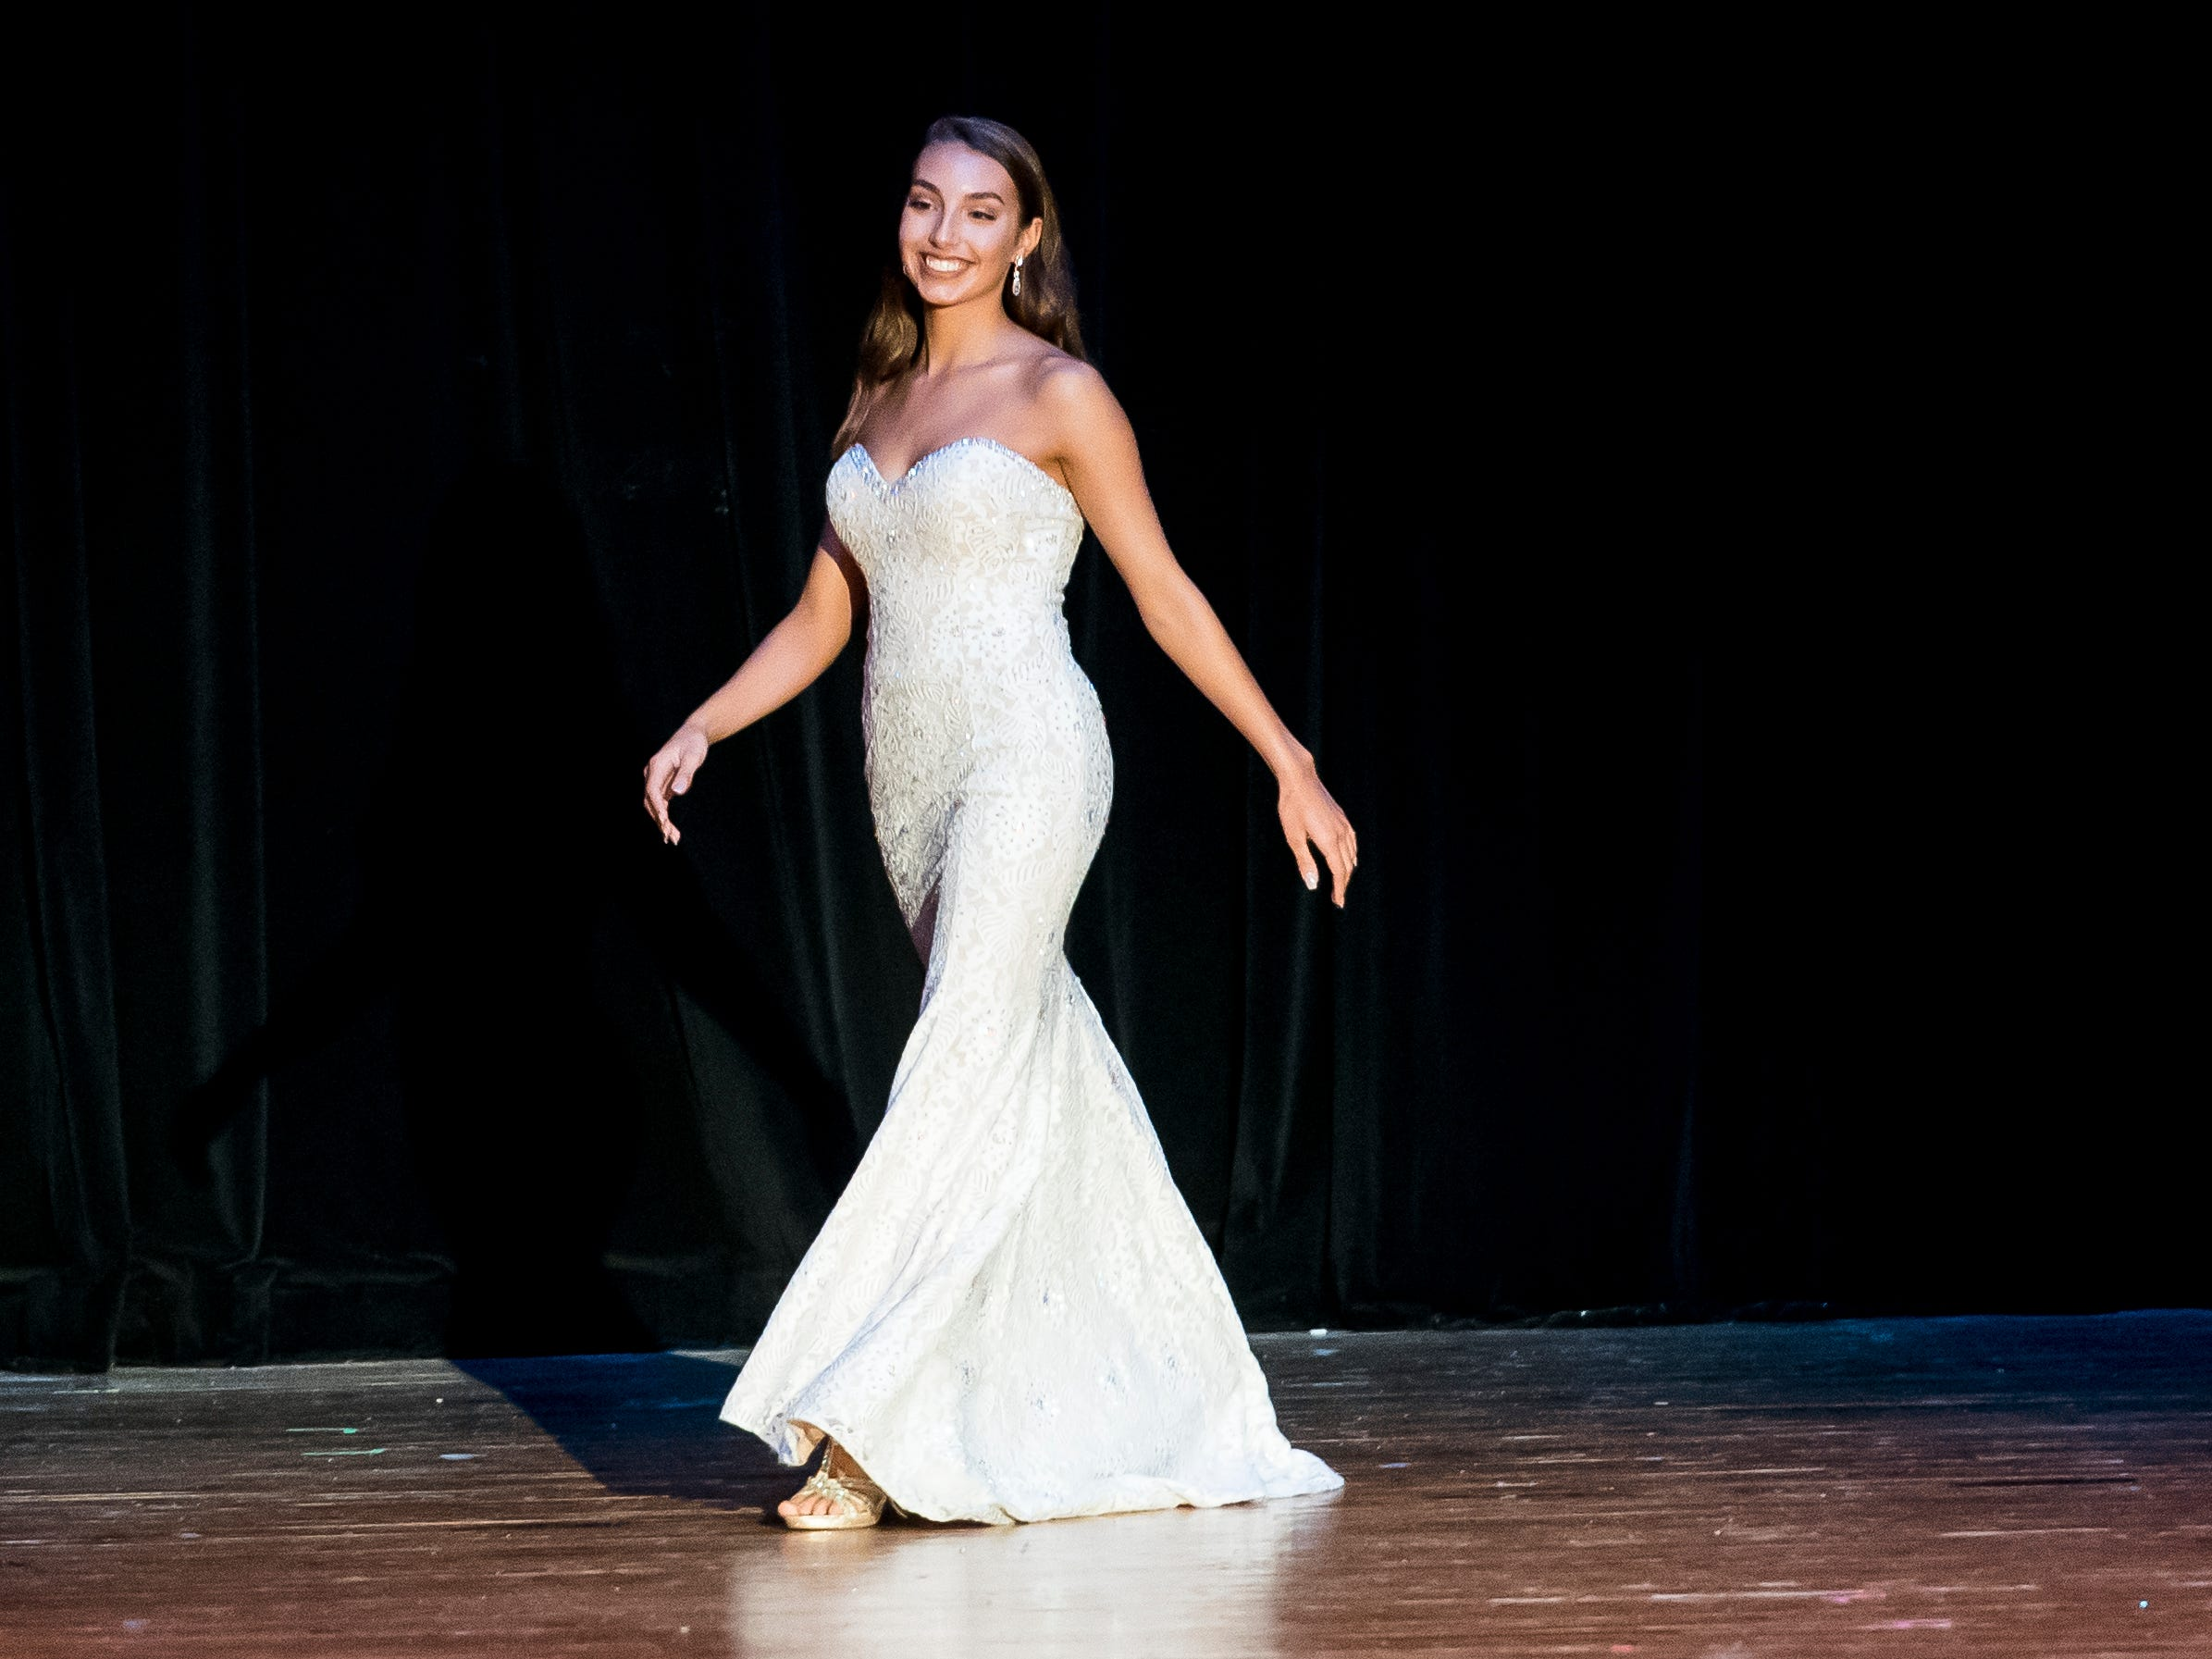 Madlyn Farley walks on stage during the evening gown competition in the 50th Miss Hanover Area pageant on Monday, October 22, 2018.